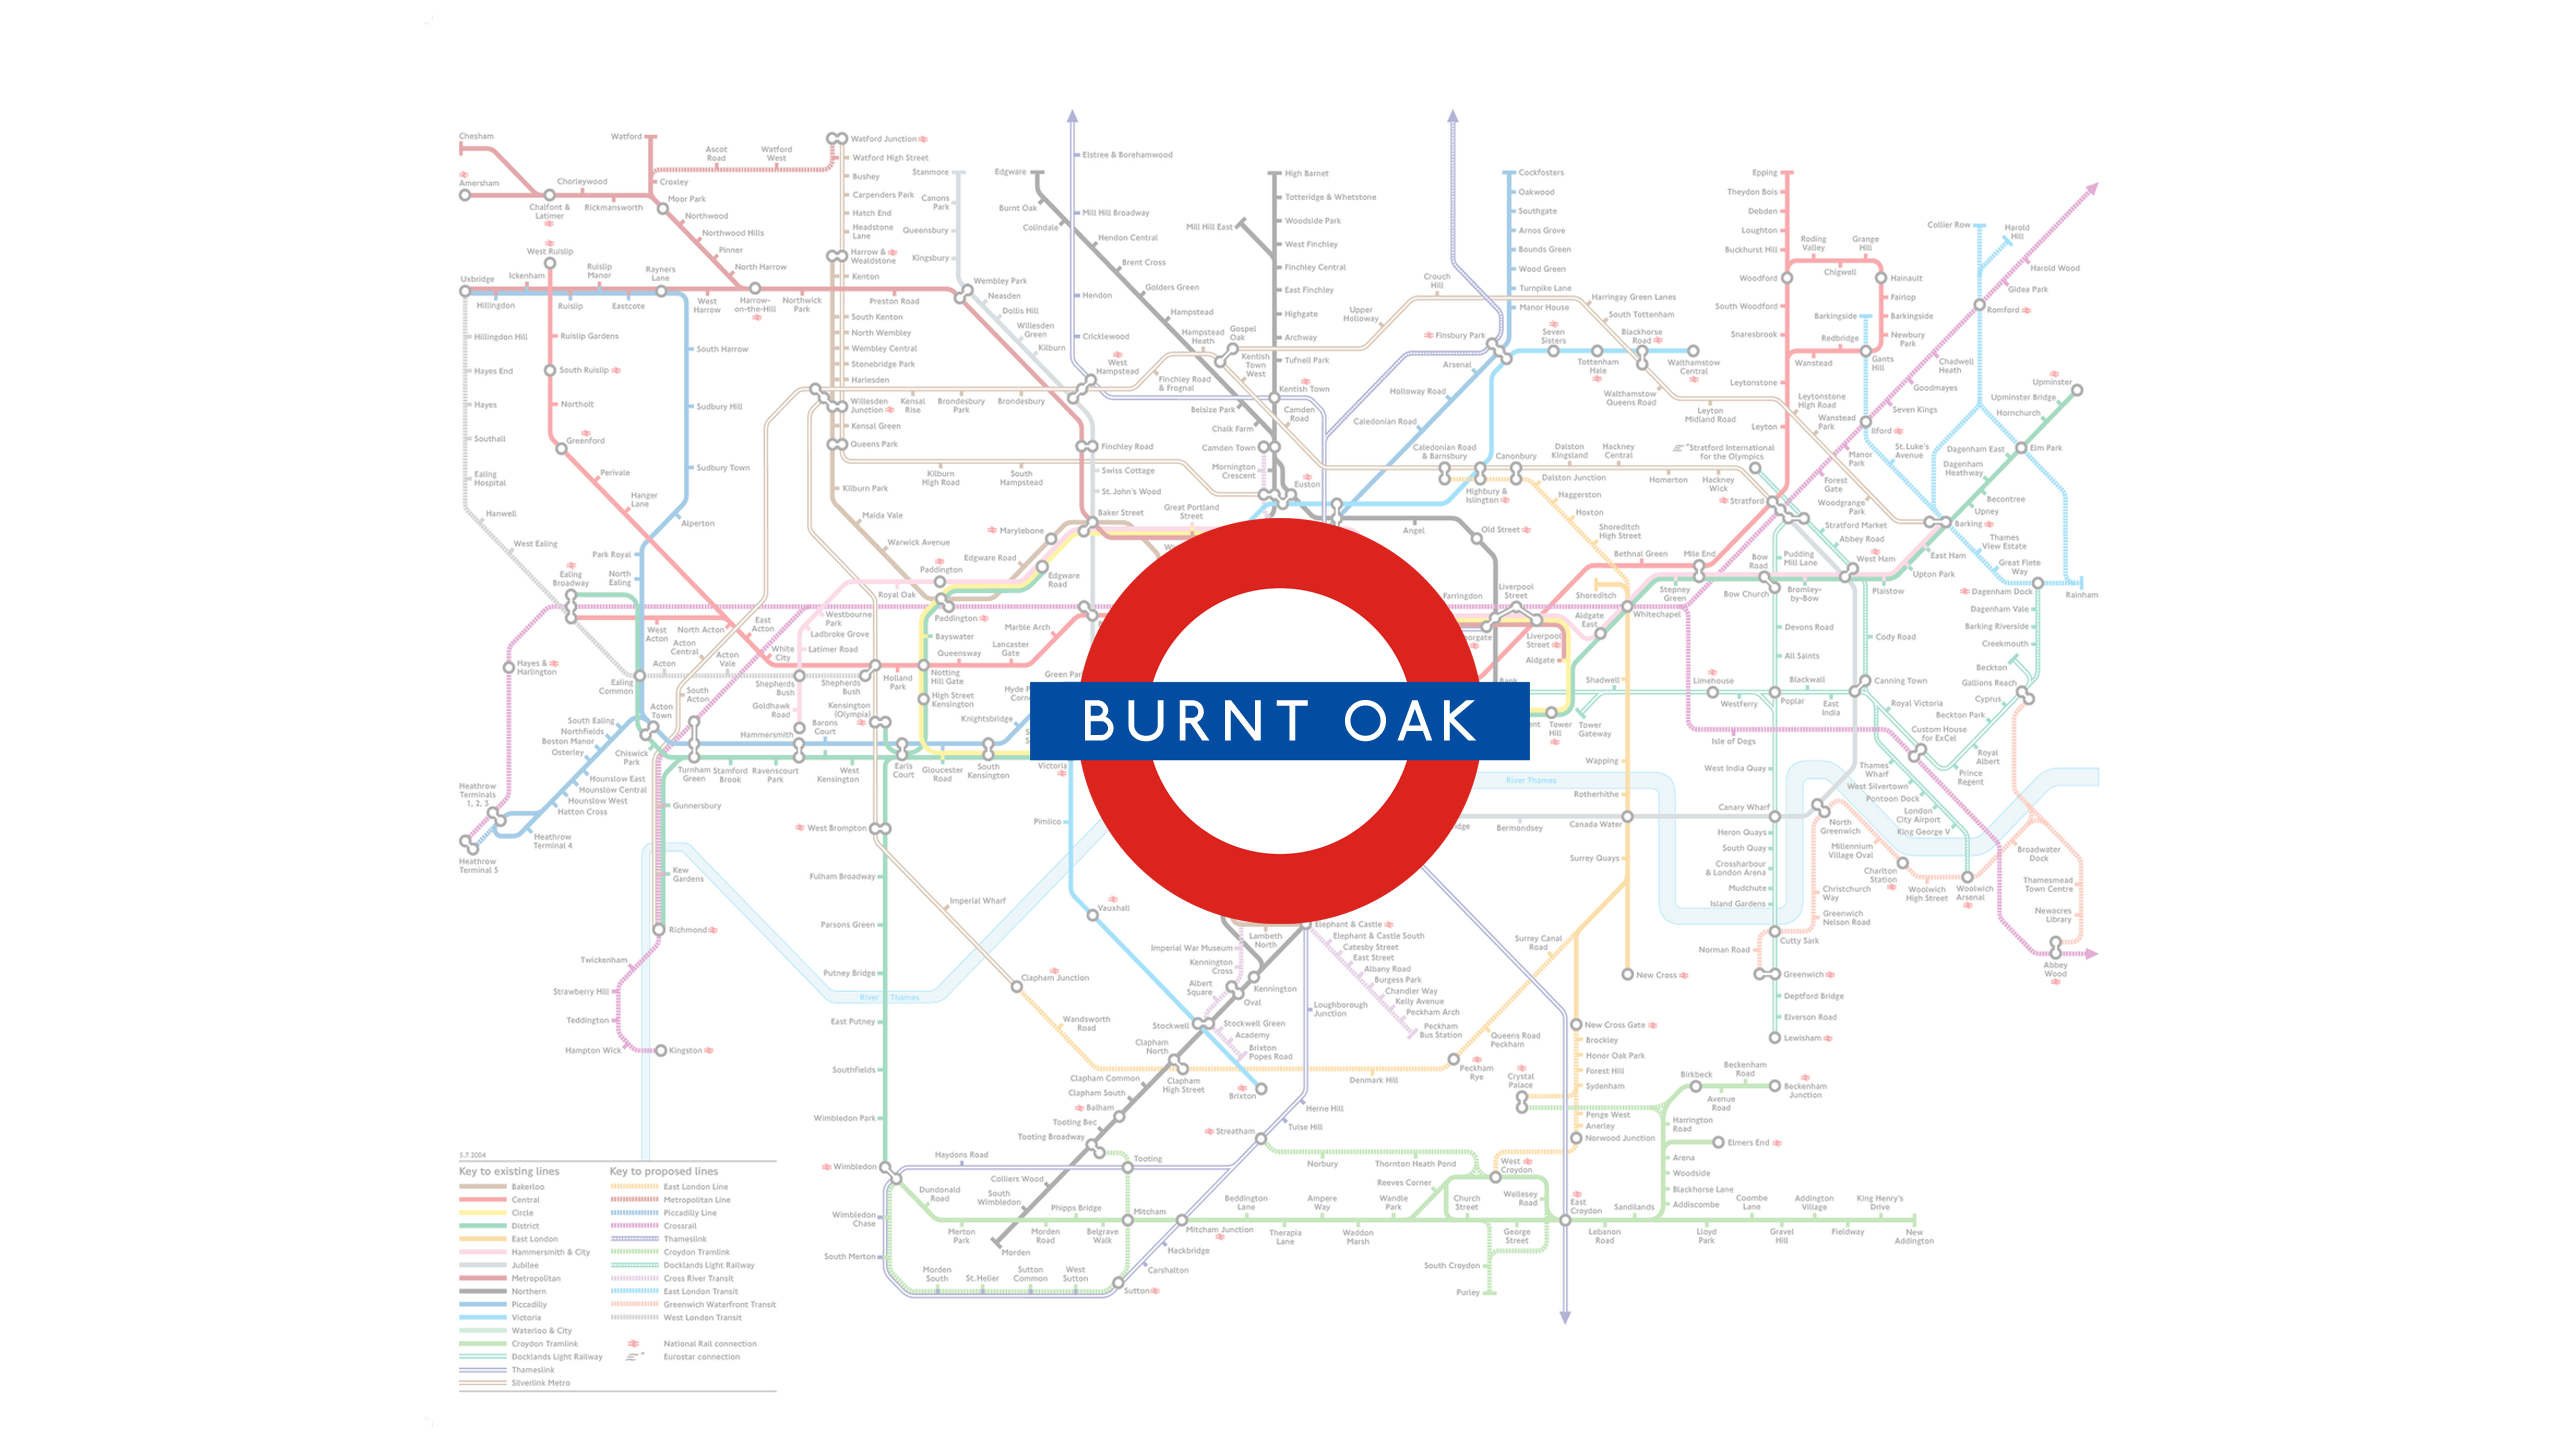 Burnt Oak (Map)